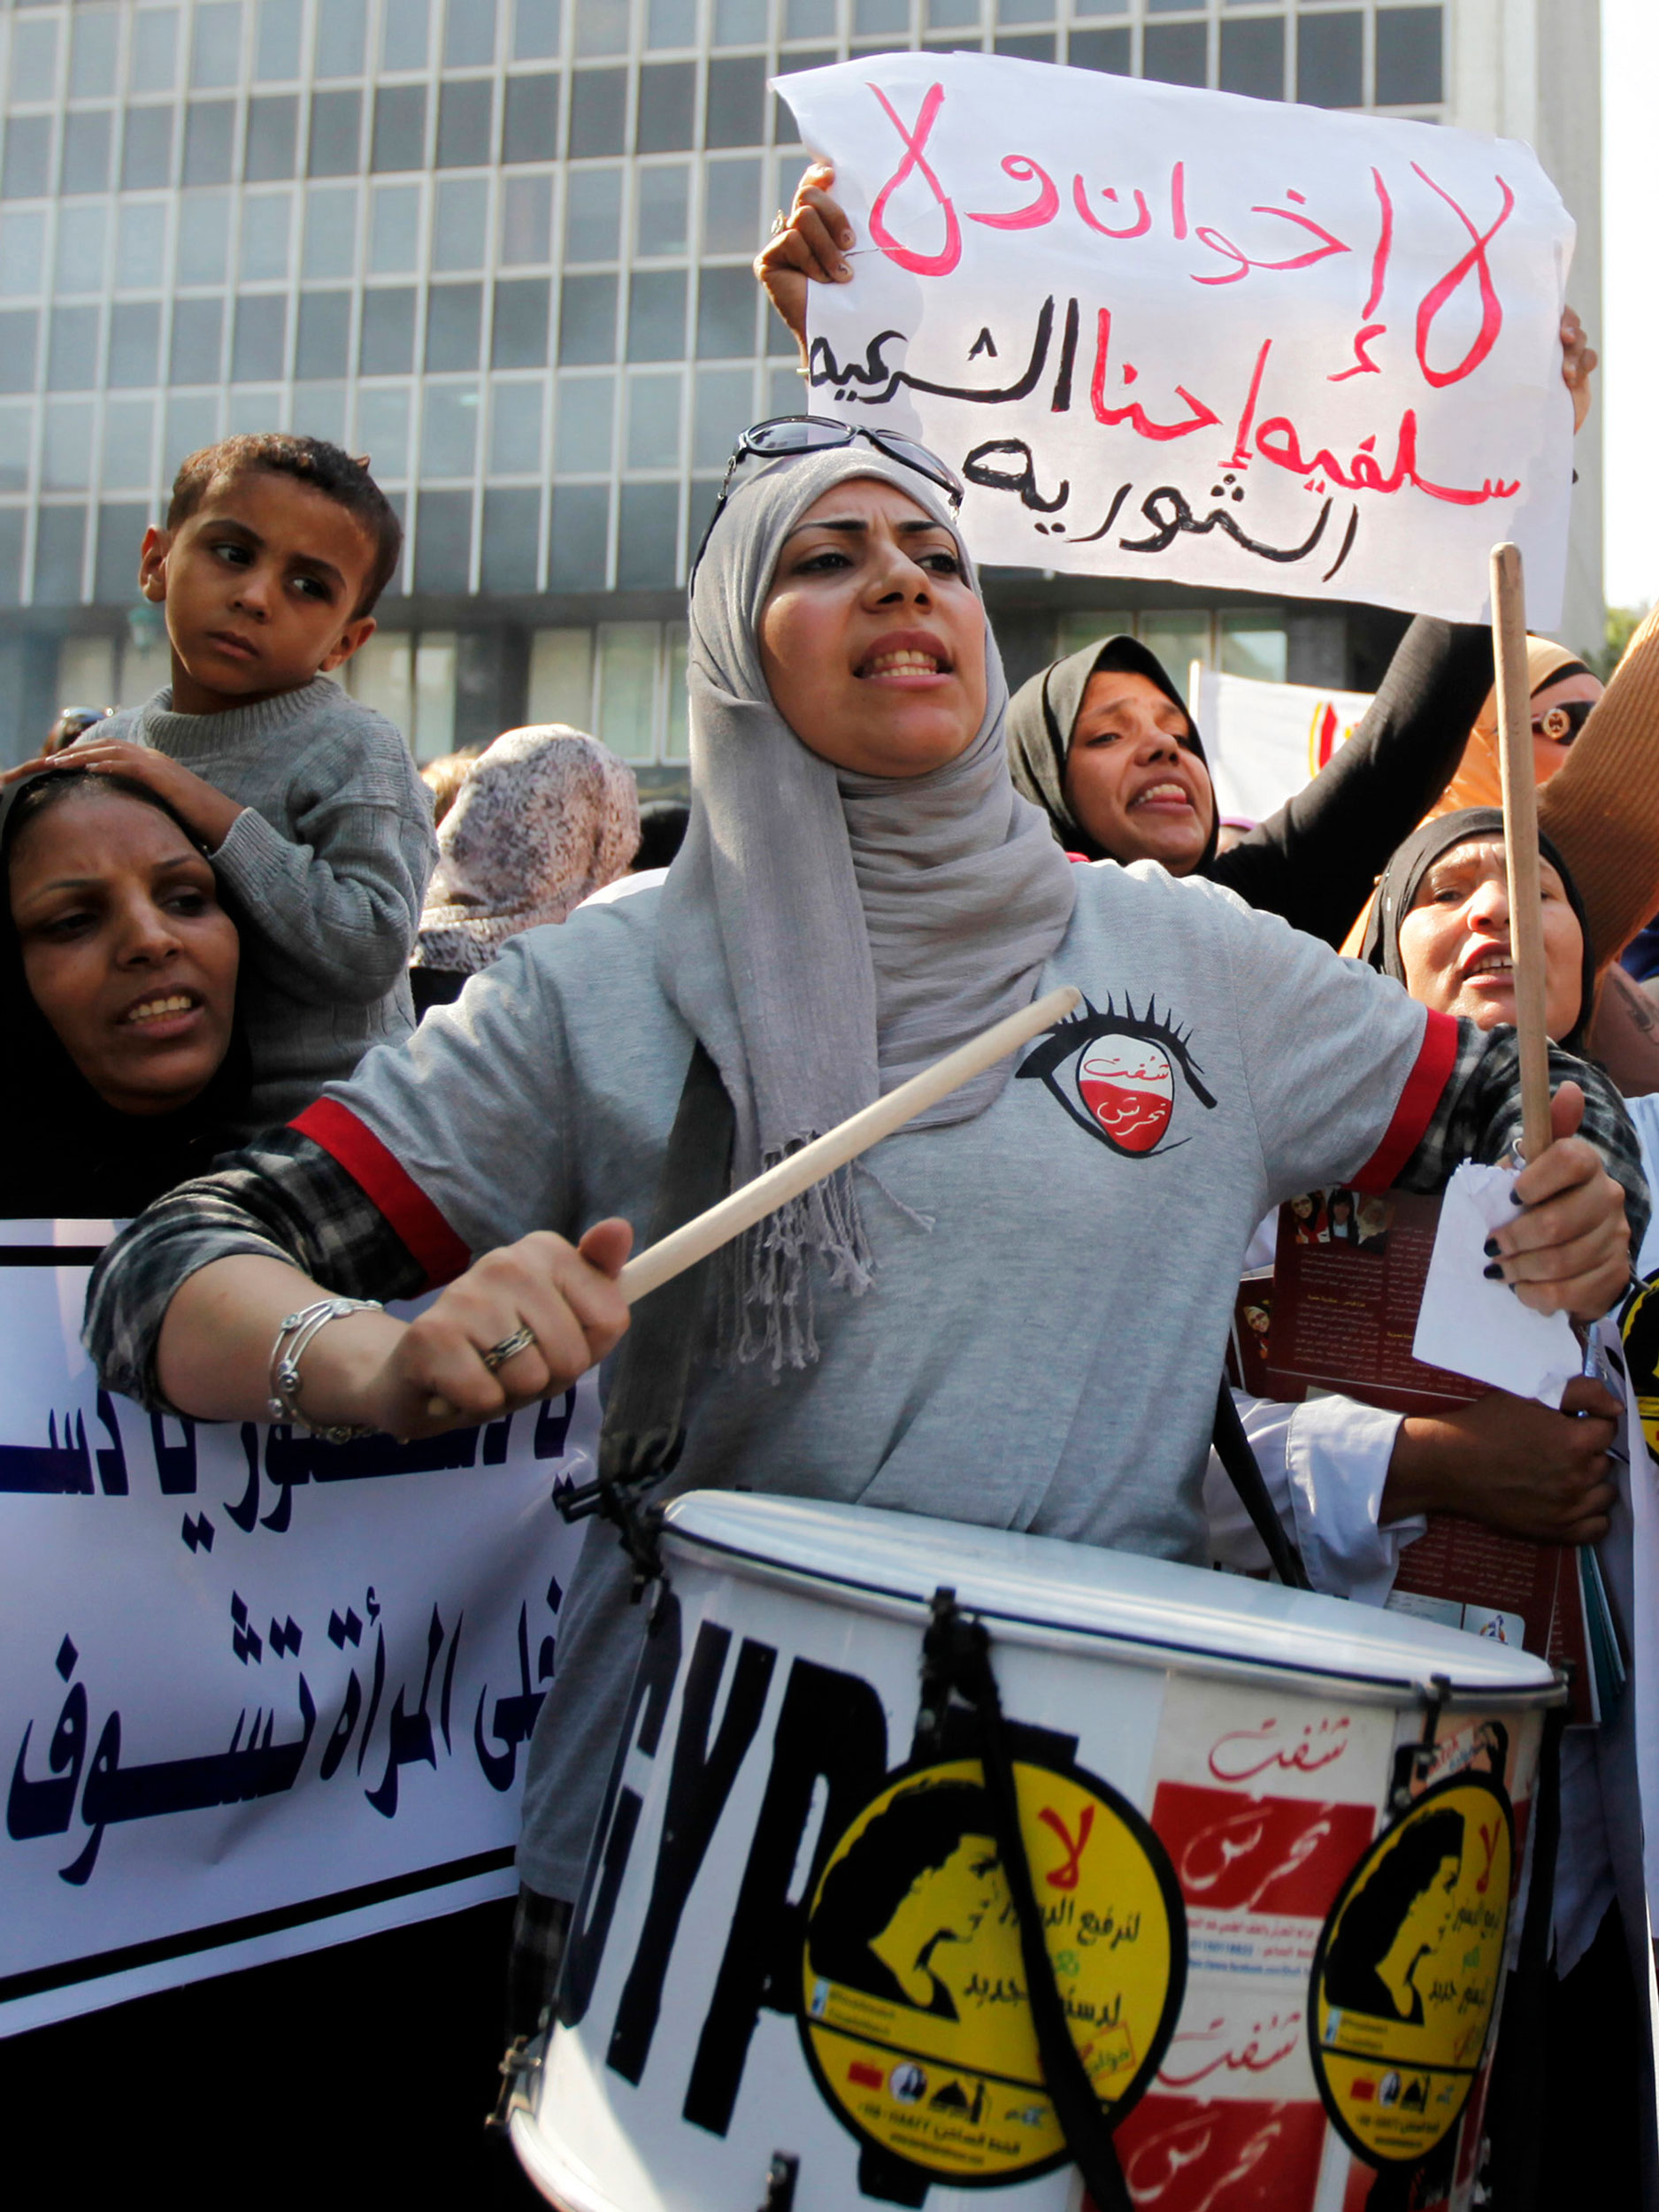 13 November 2013: Protesters demand more rights for women in front of the Shura Council, or upper house of parliament, in Cairo. (Photograph by Reuters/ Mohamed Abd El-Ghany)